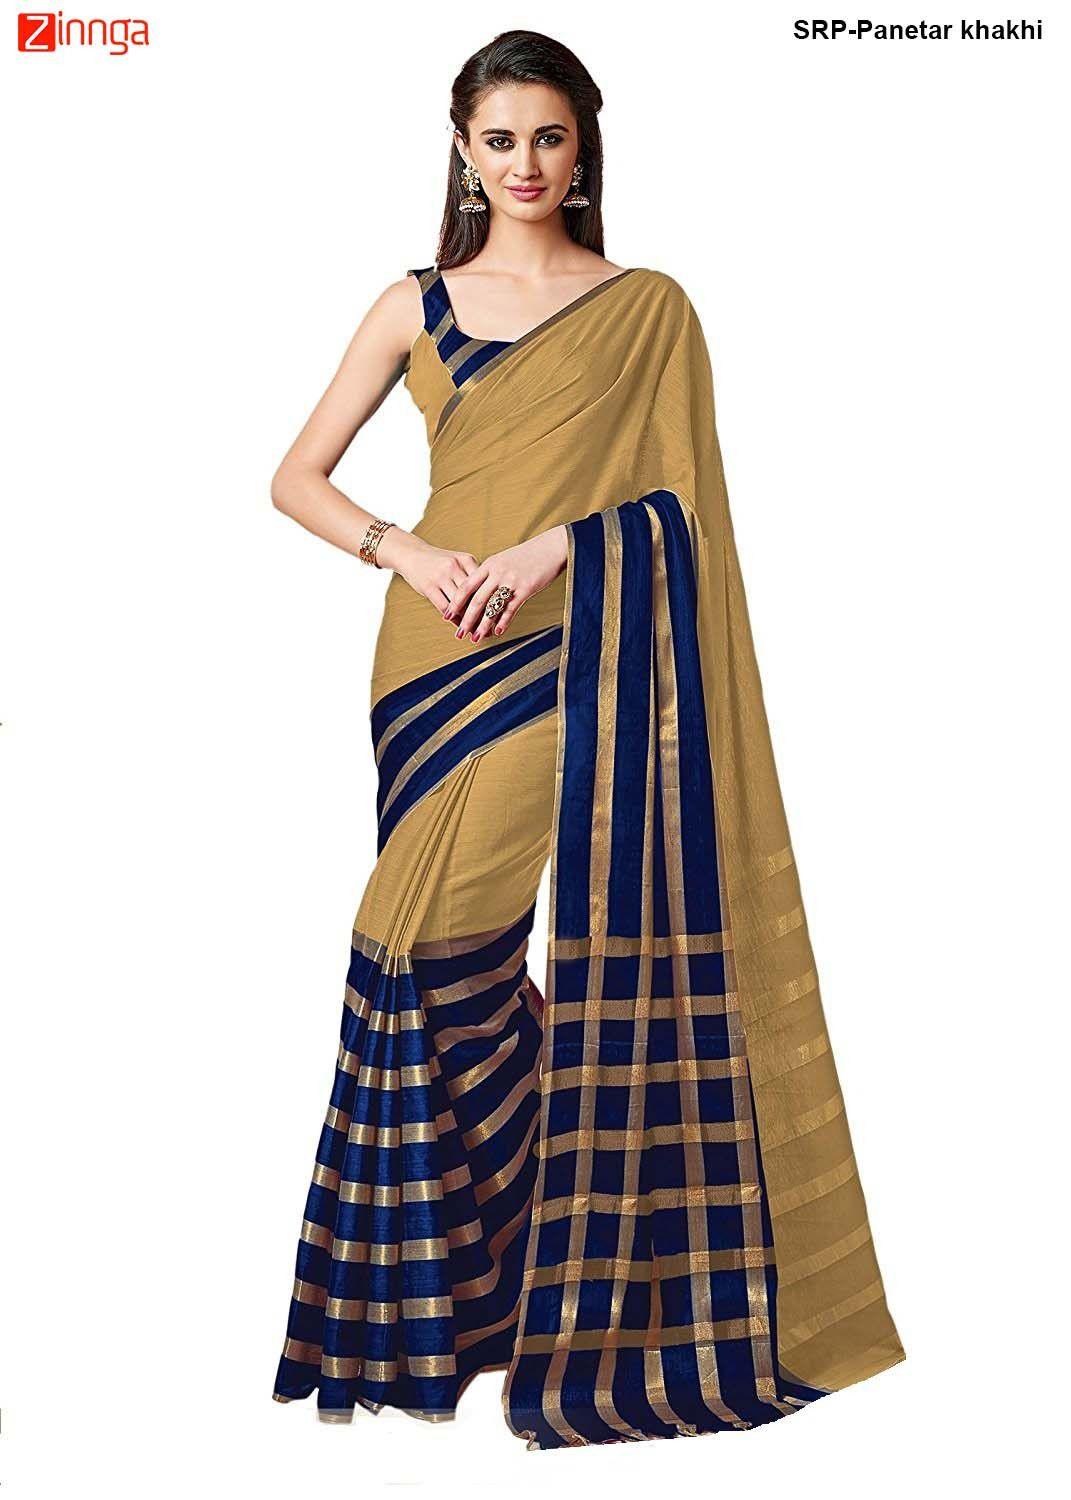 6d6f819a3f Beige and Blue Color Cotton Saree With Blouse #Fashion #Trending #Nice  #Popular #Collection #New #Looking #Fashionable #New #Look #Zinngafashion